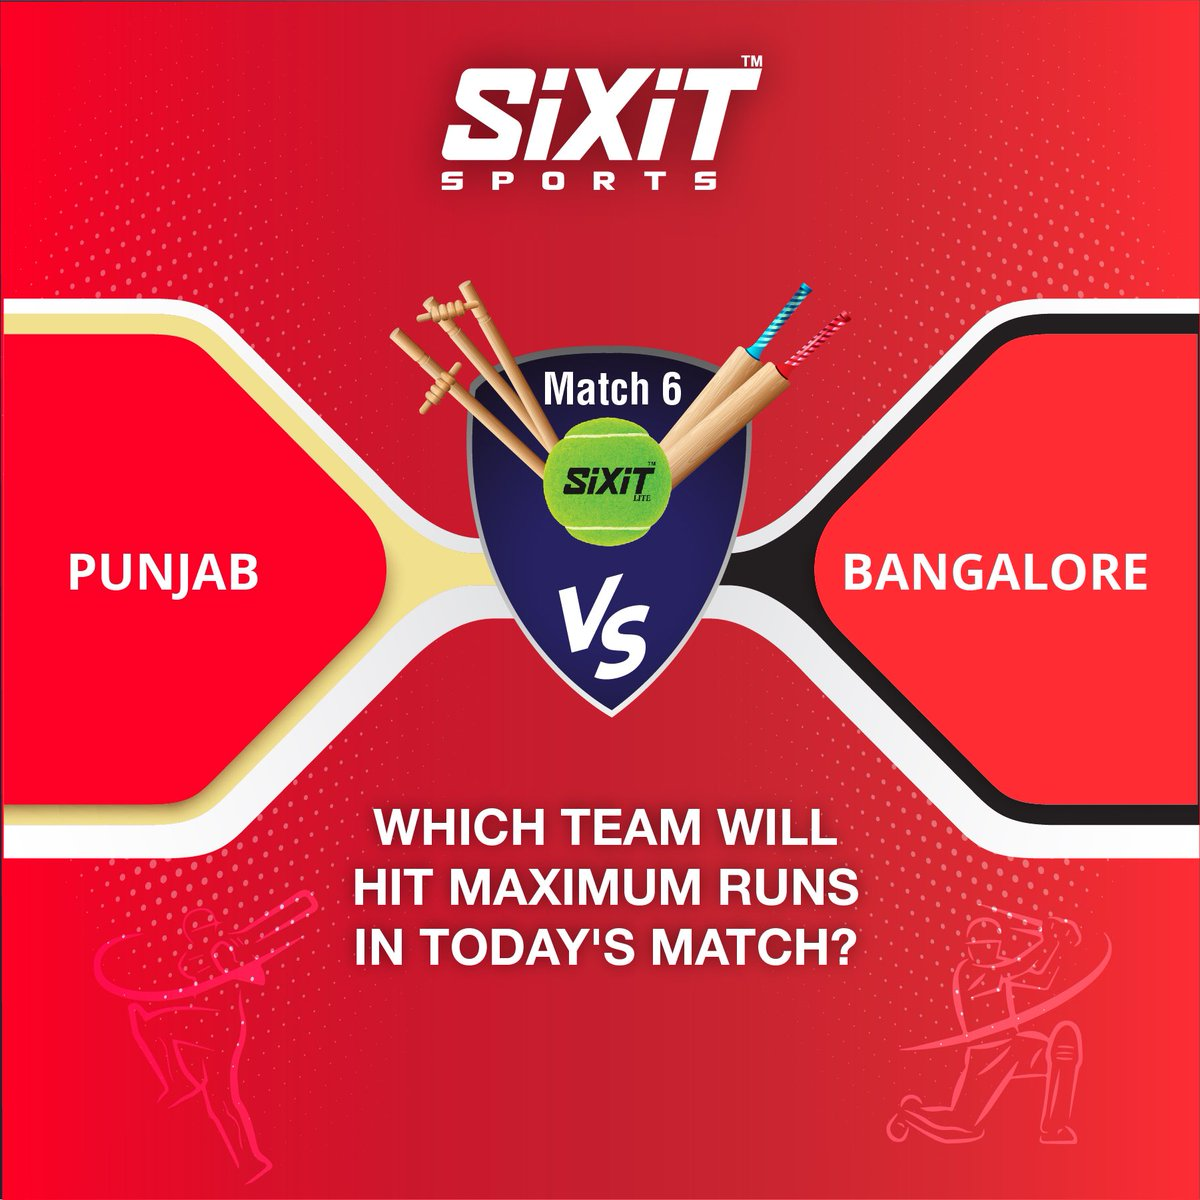 #WiNiT with #SiXiT #contest #Predict which team will take maximum #runs ?chance to win exciting prizes!Follow us @sixitsports #comment ur answer #RT #Share #tag friends  #KXIPvsRCB #RCBvsKXIP #Bangalore  #punjab#ContestAlert #giveaway #IPL2020#KXIP #RCB *T&C apply https://t.co/lE7hEWEIrf